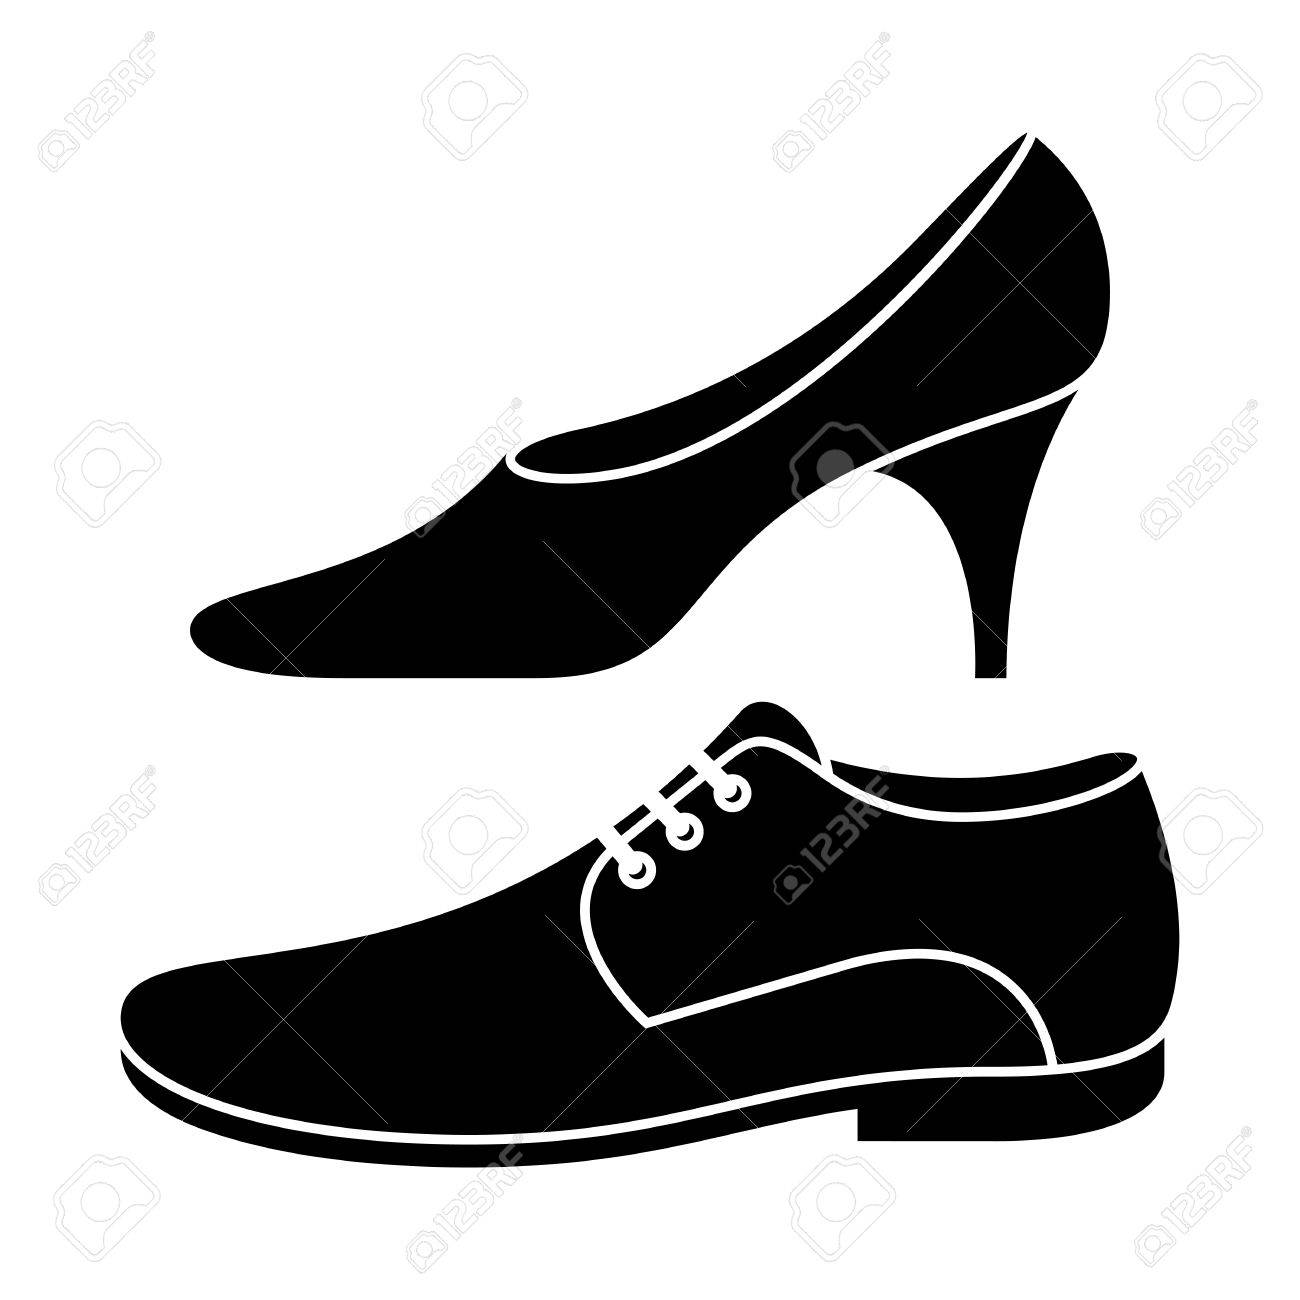 Shoes for men clipart image freeuse download 12+ Women Shoes Clipart | ClipartLook image freeuse download